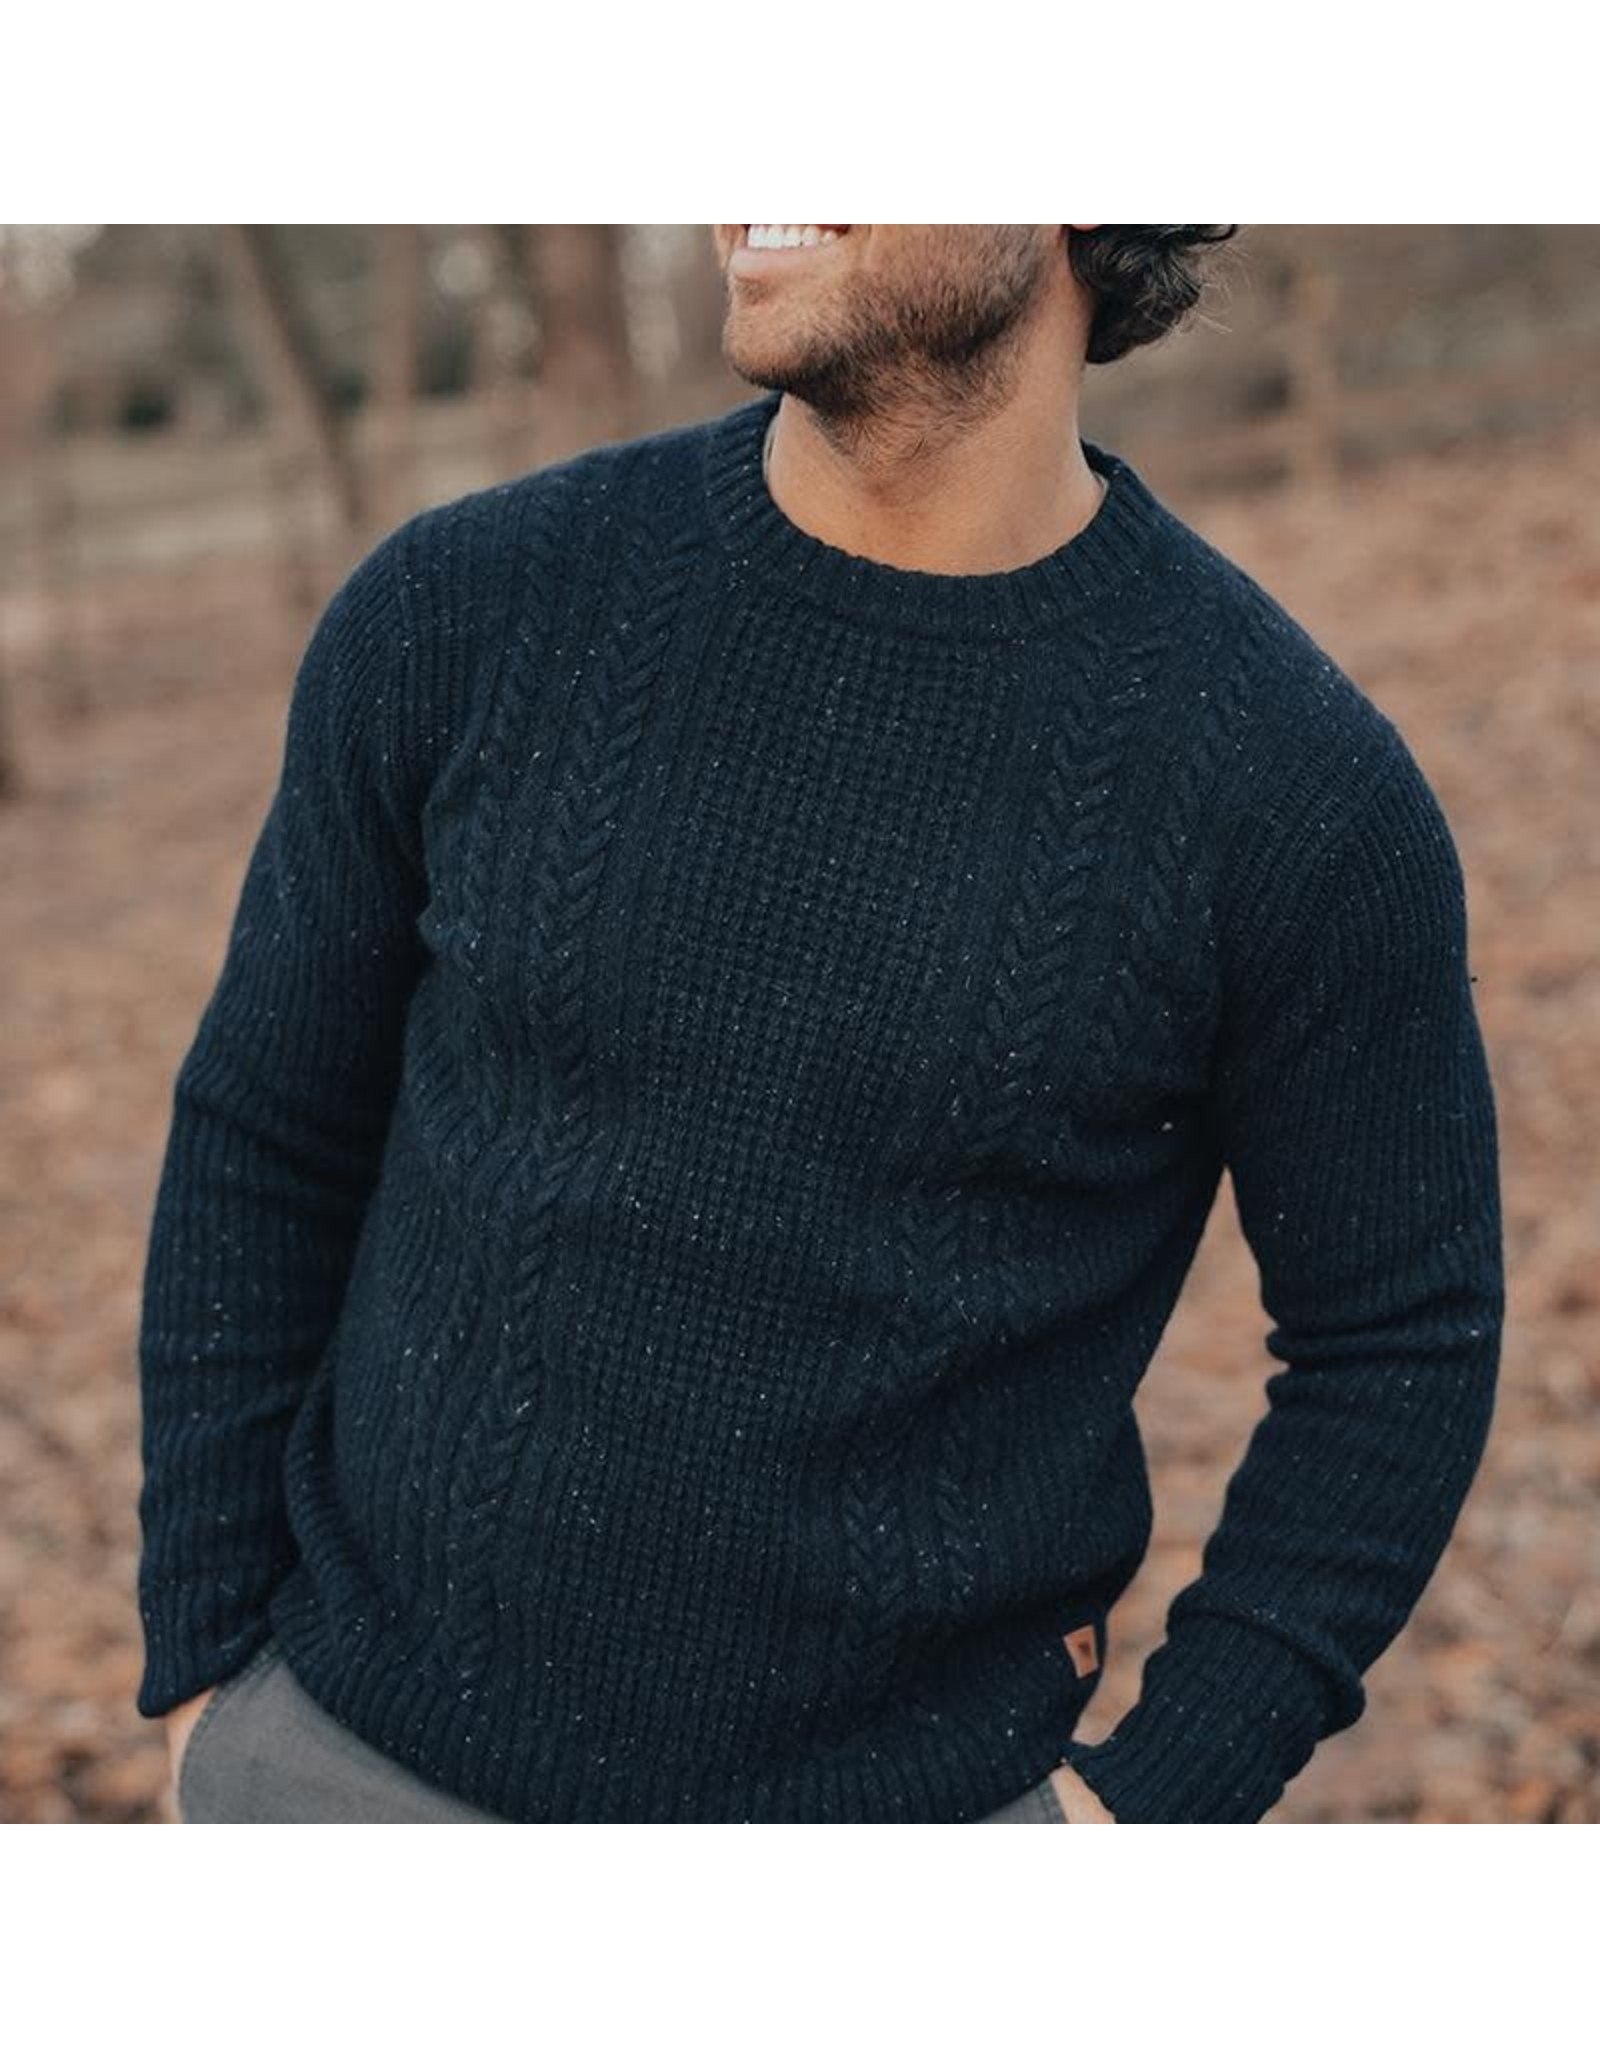 The Normal Brand The Normal Brand Kennedy Crew Sweater